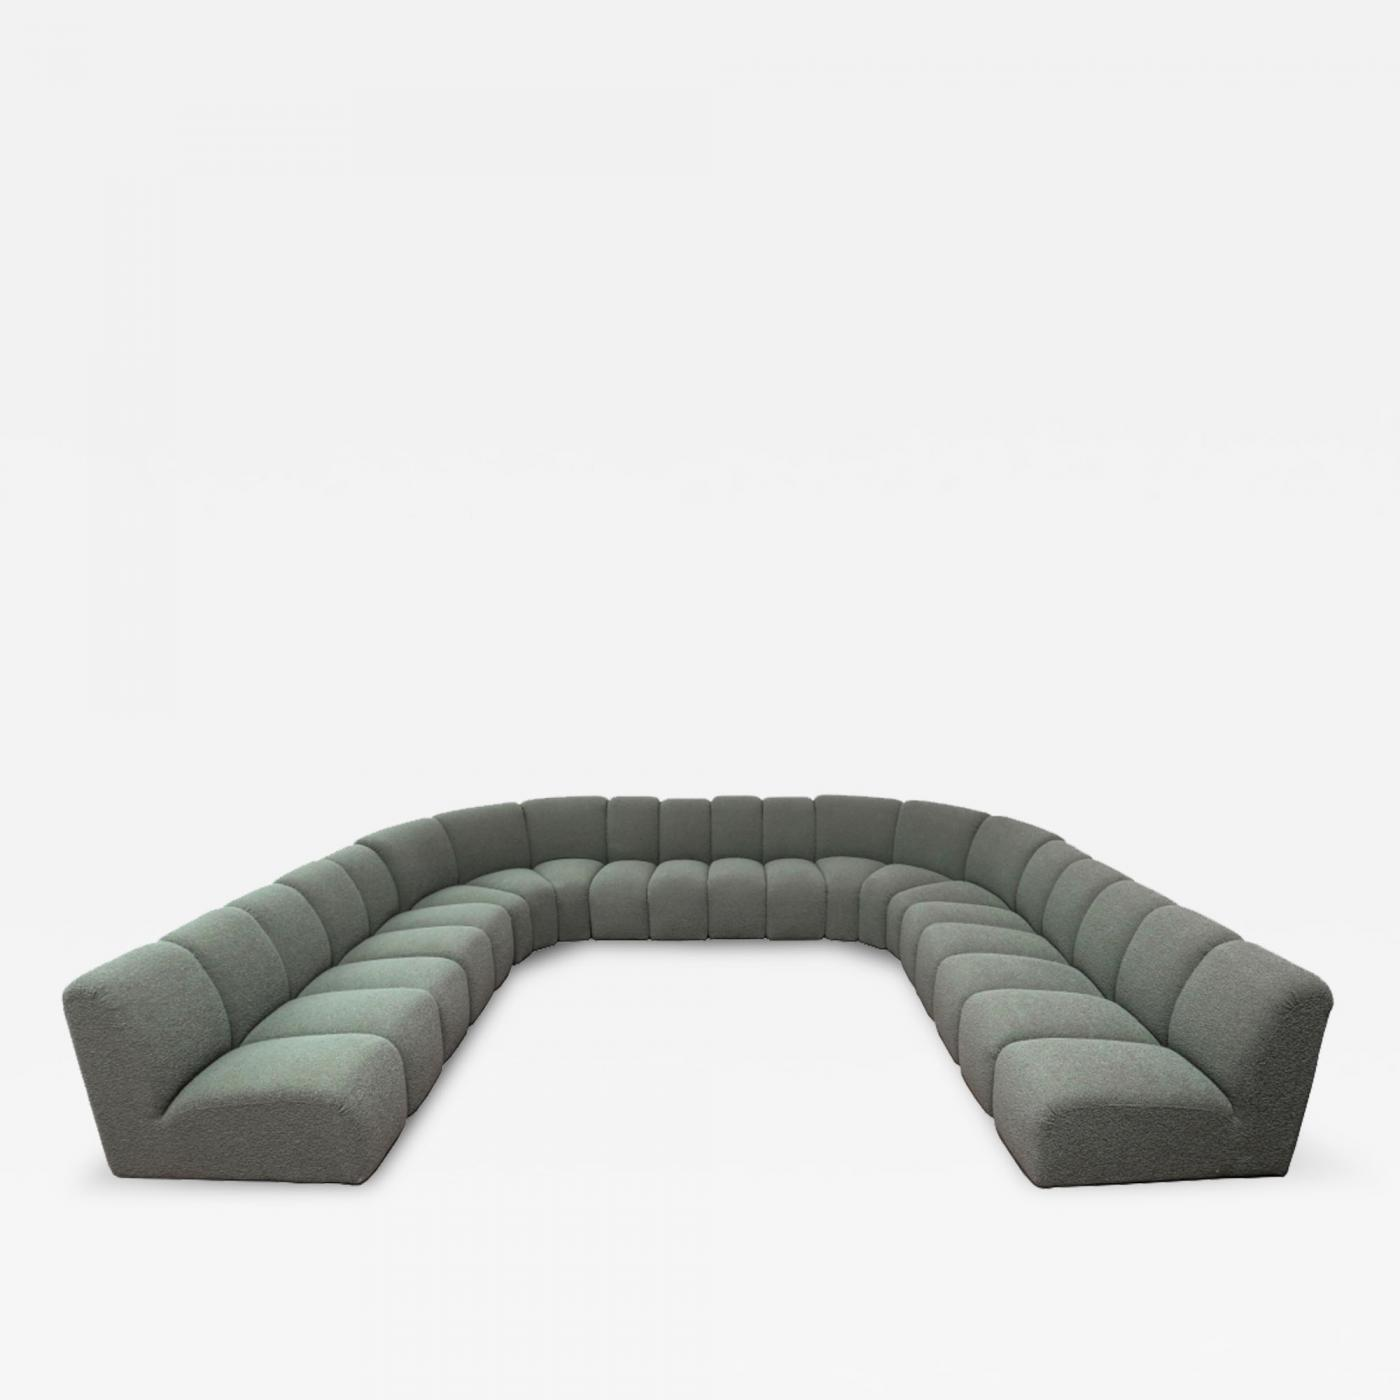 Pierre Paulin Sofa Pierre Paulin Mississippi Sofa By Pierre Paulin